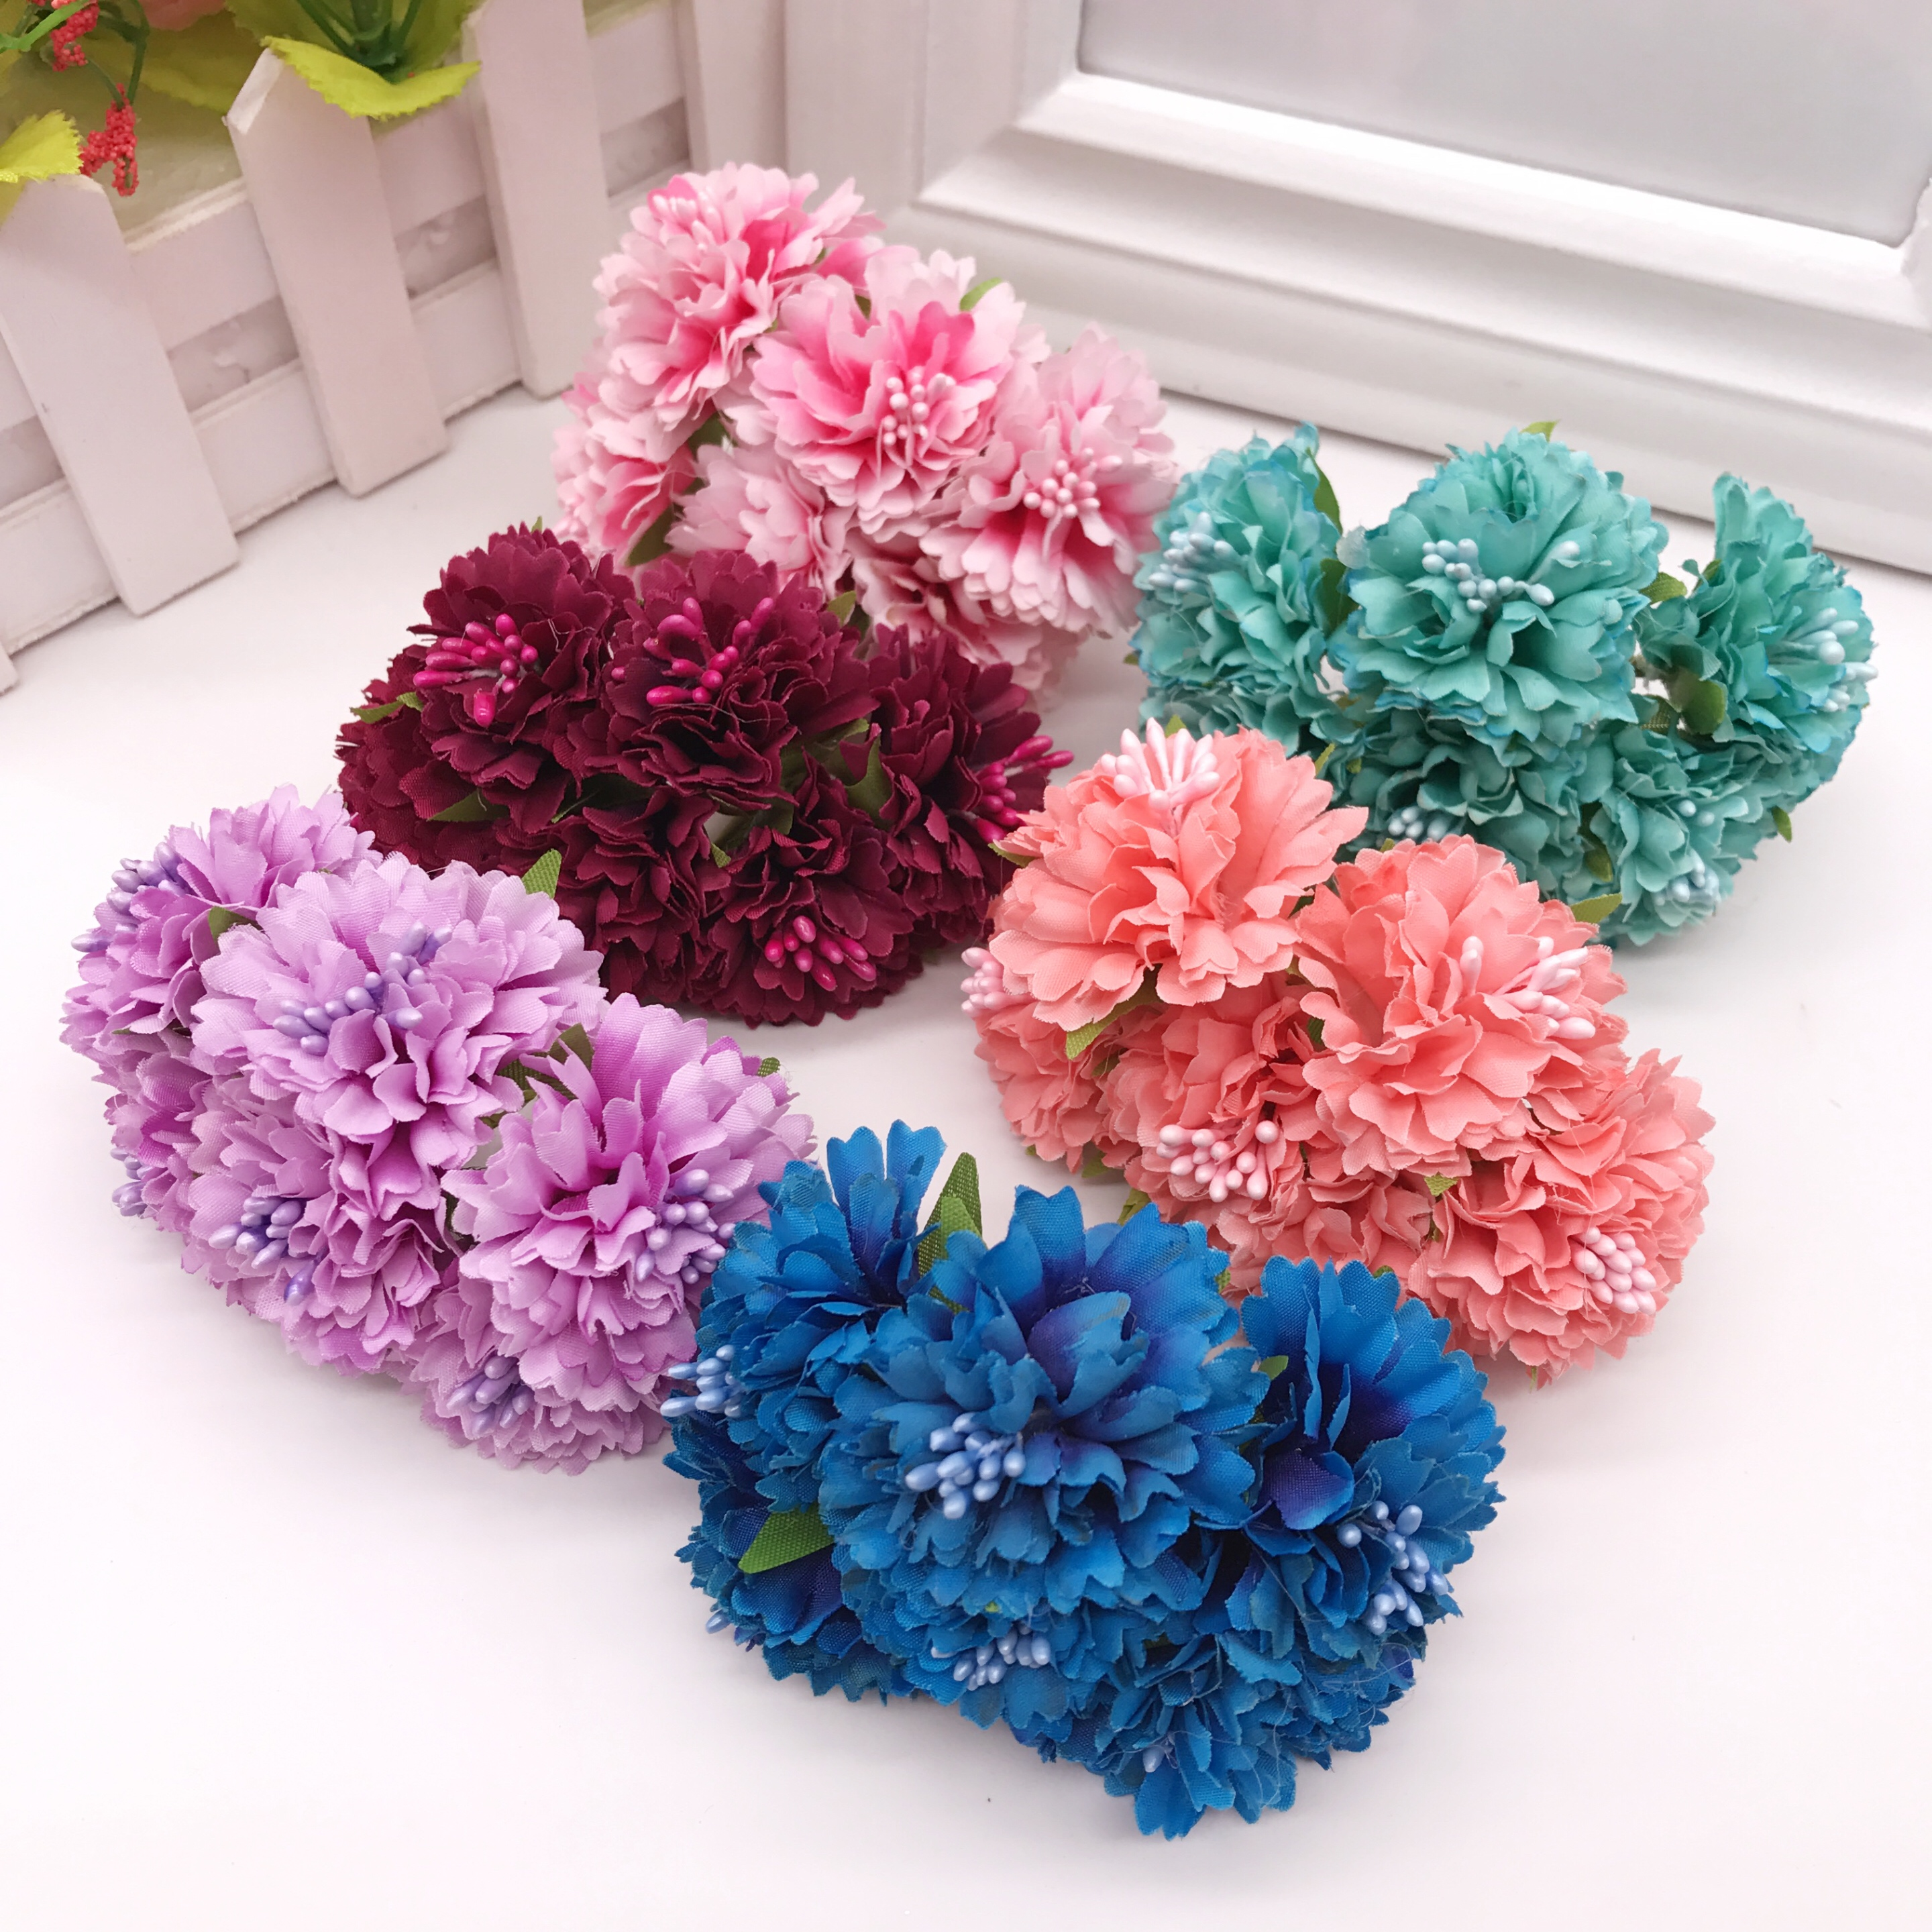 Top 8 Most Popular Artificial Craft Hydrangea Bouquet Home Wedding Brands And Get Free Shipping A729